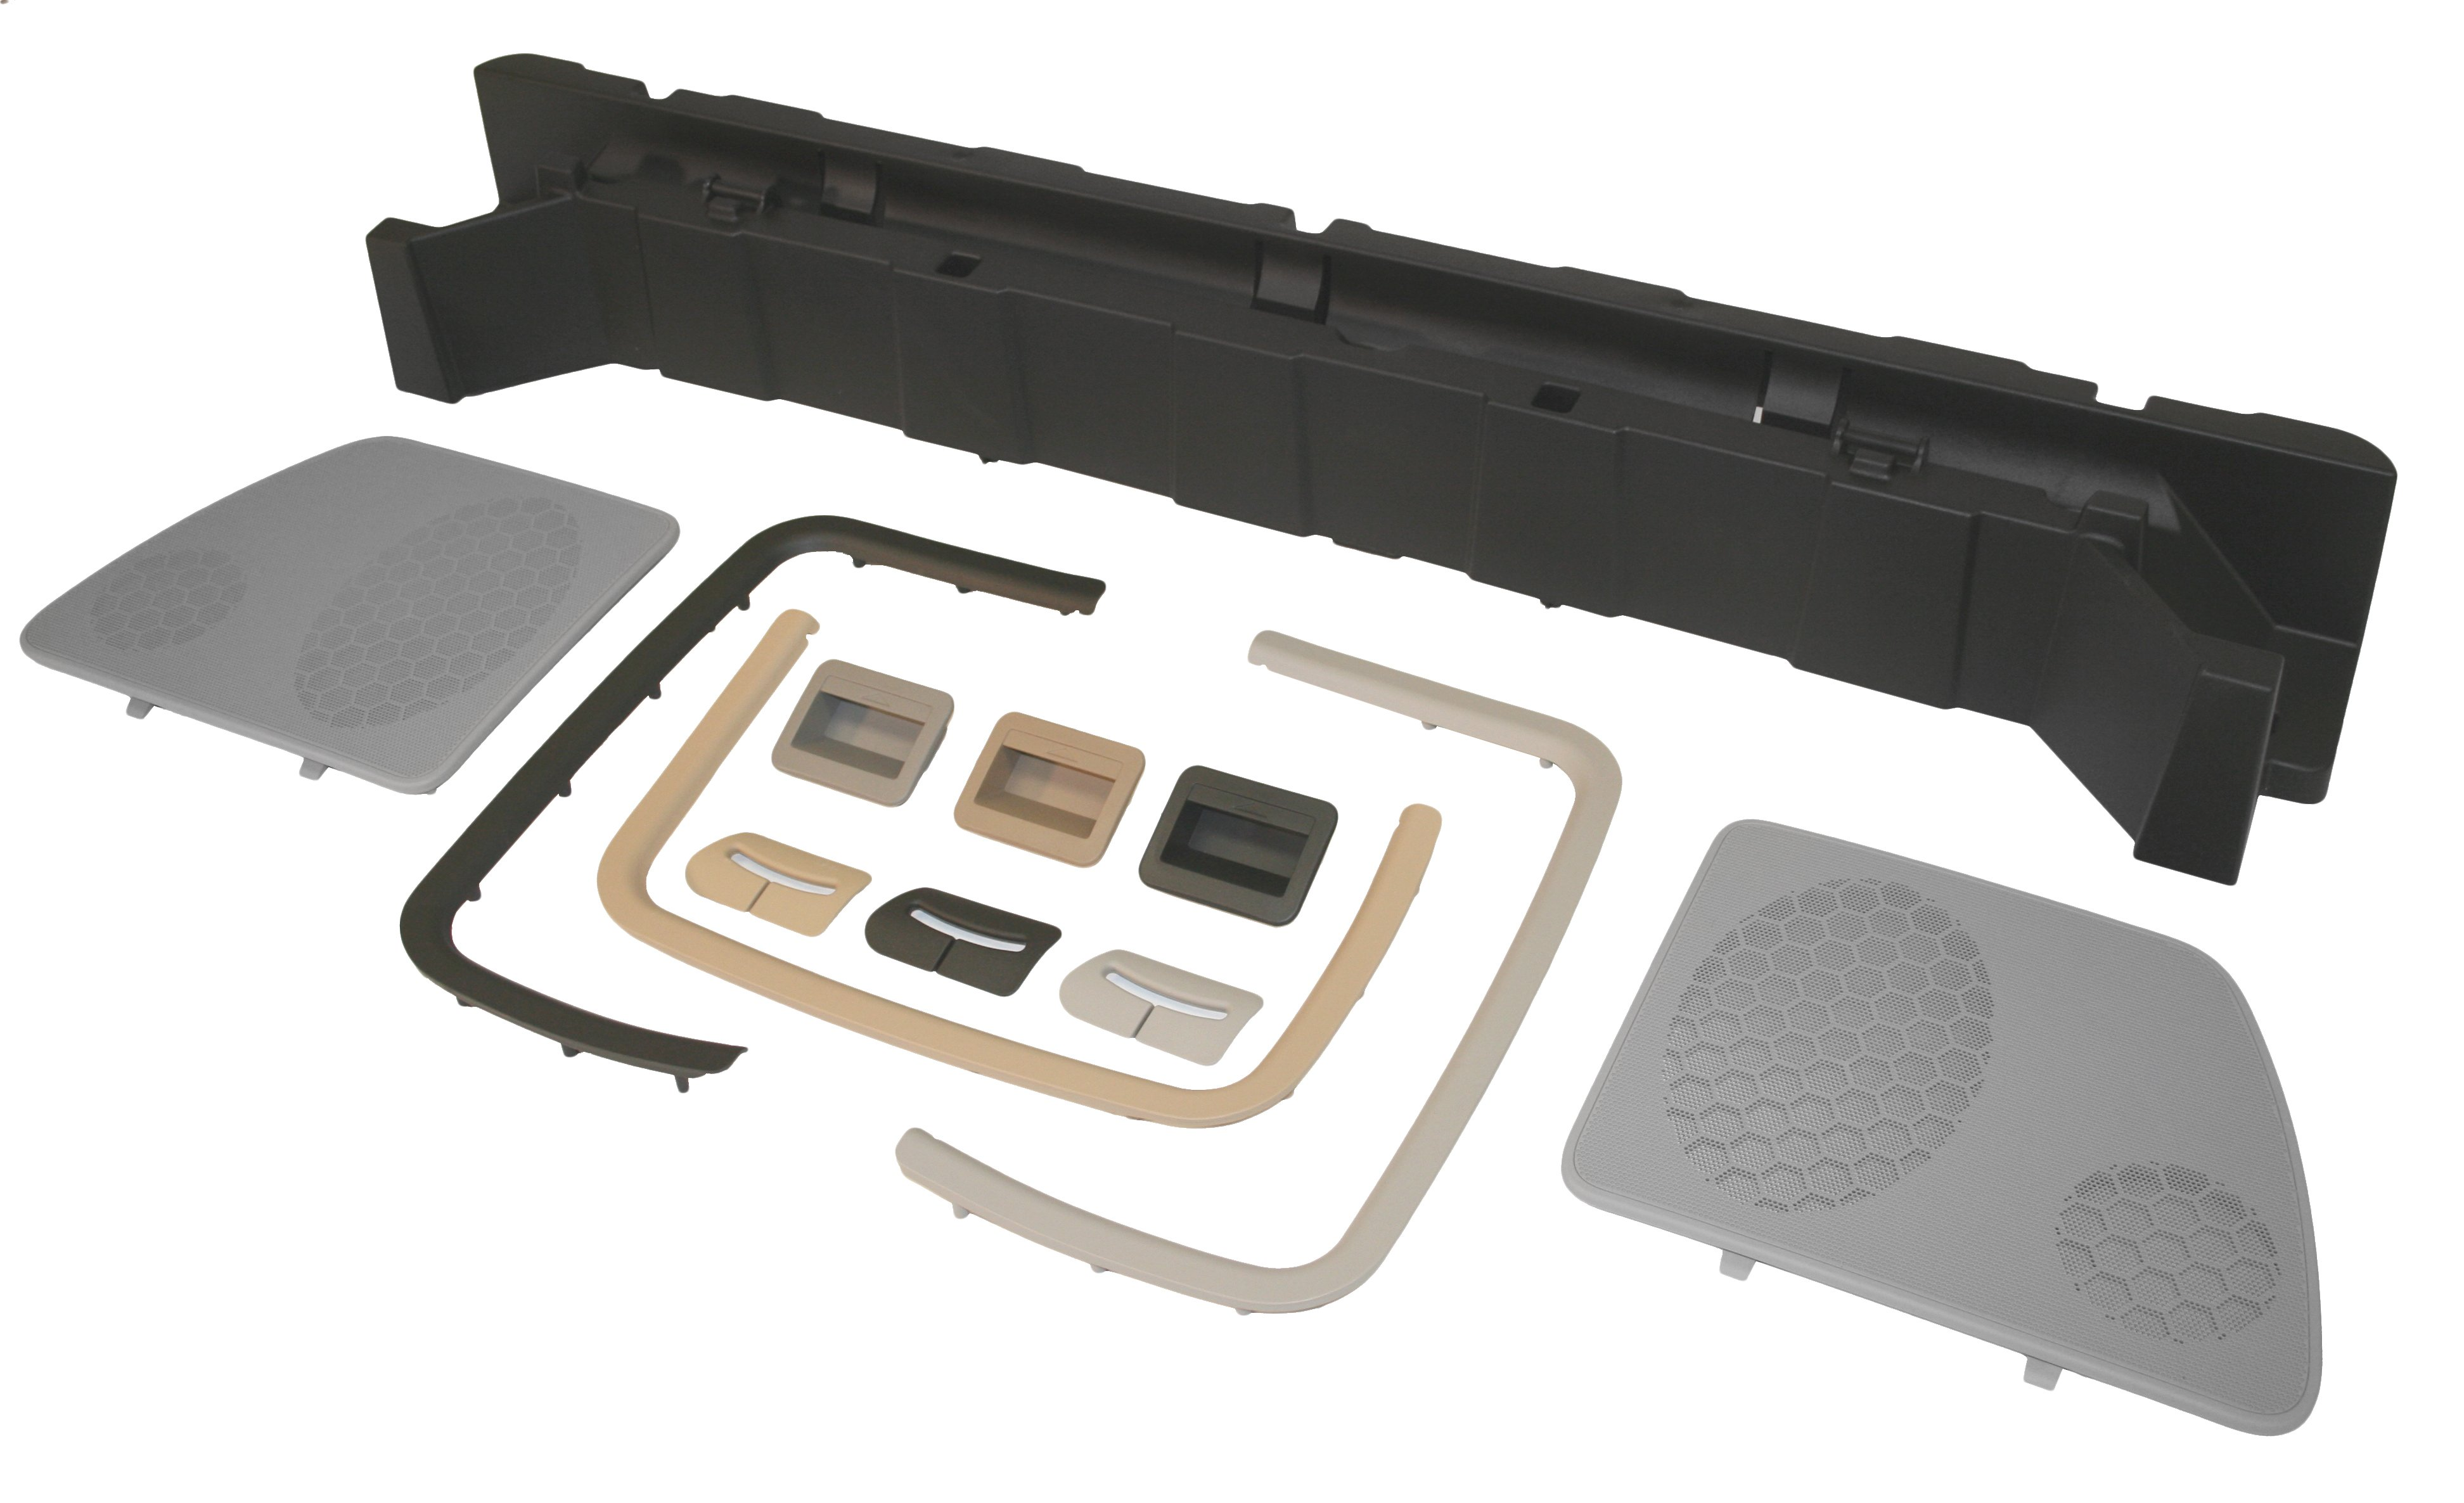 An assortment of injection molded interior trim components.